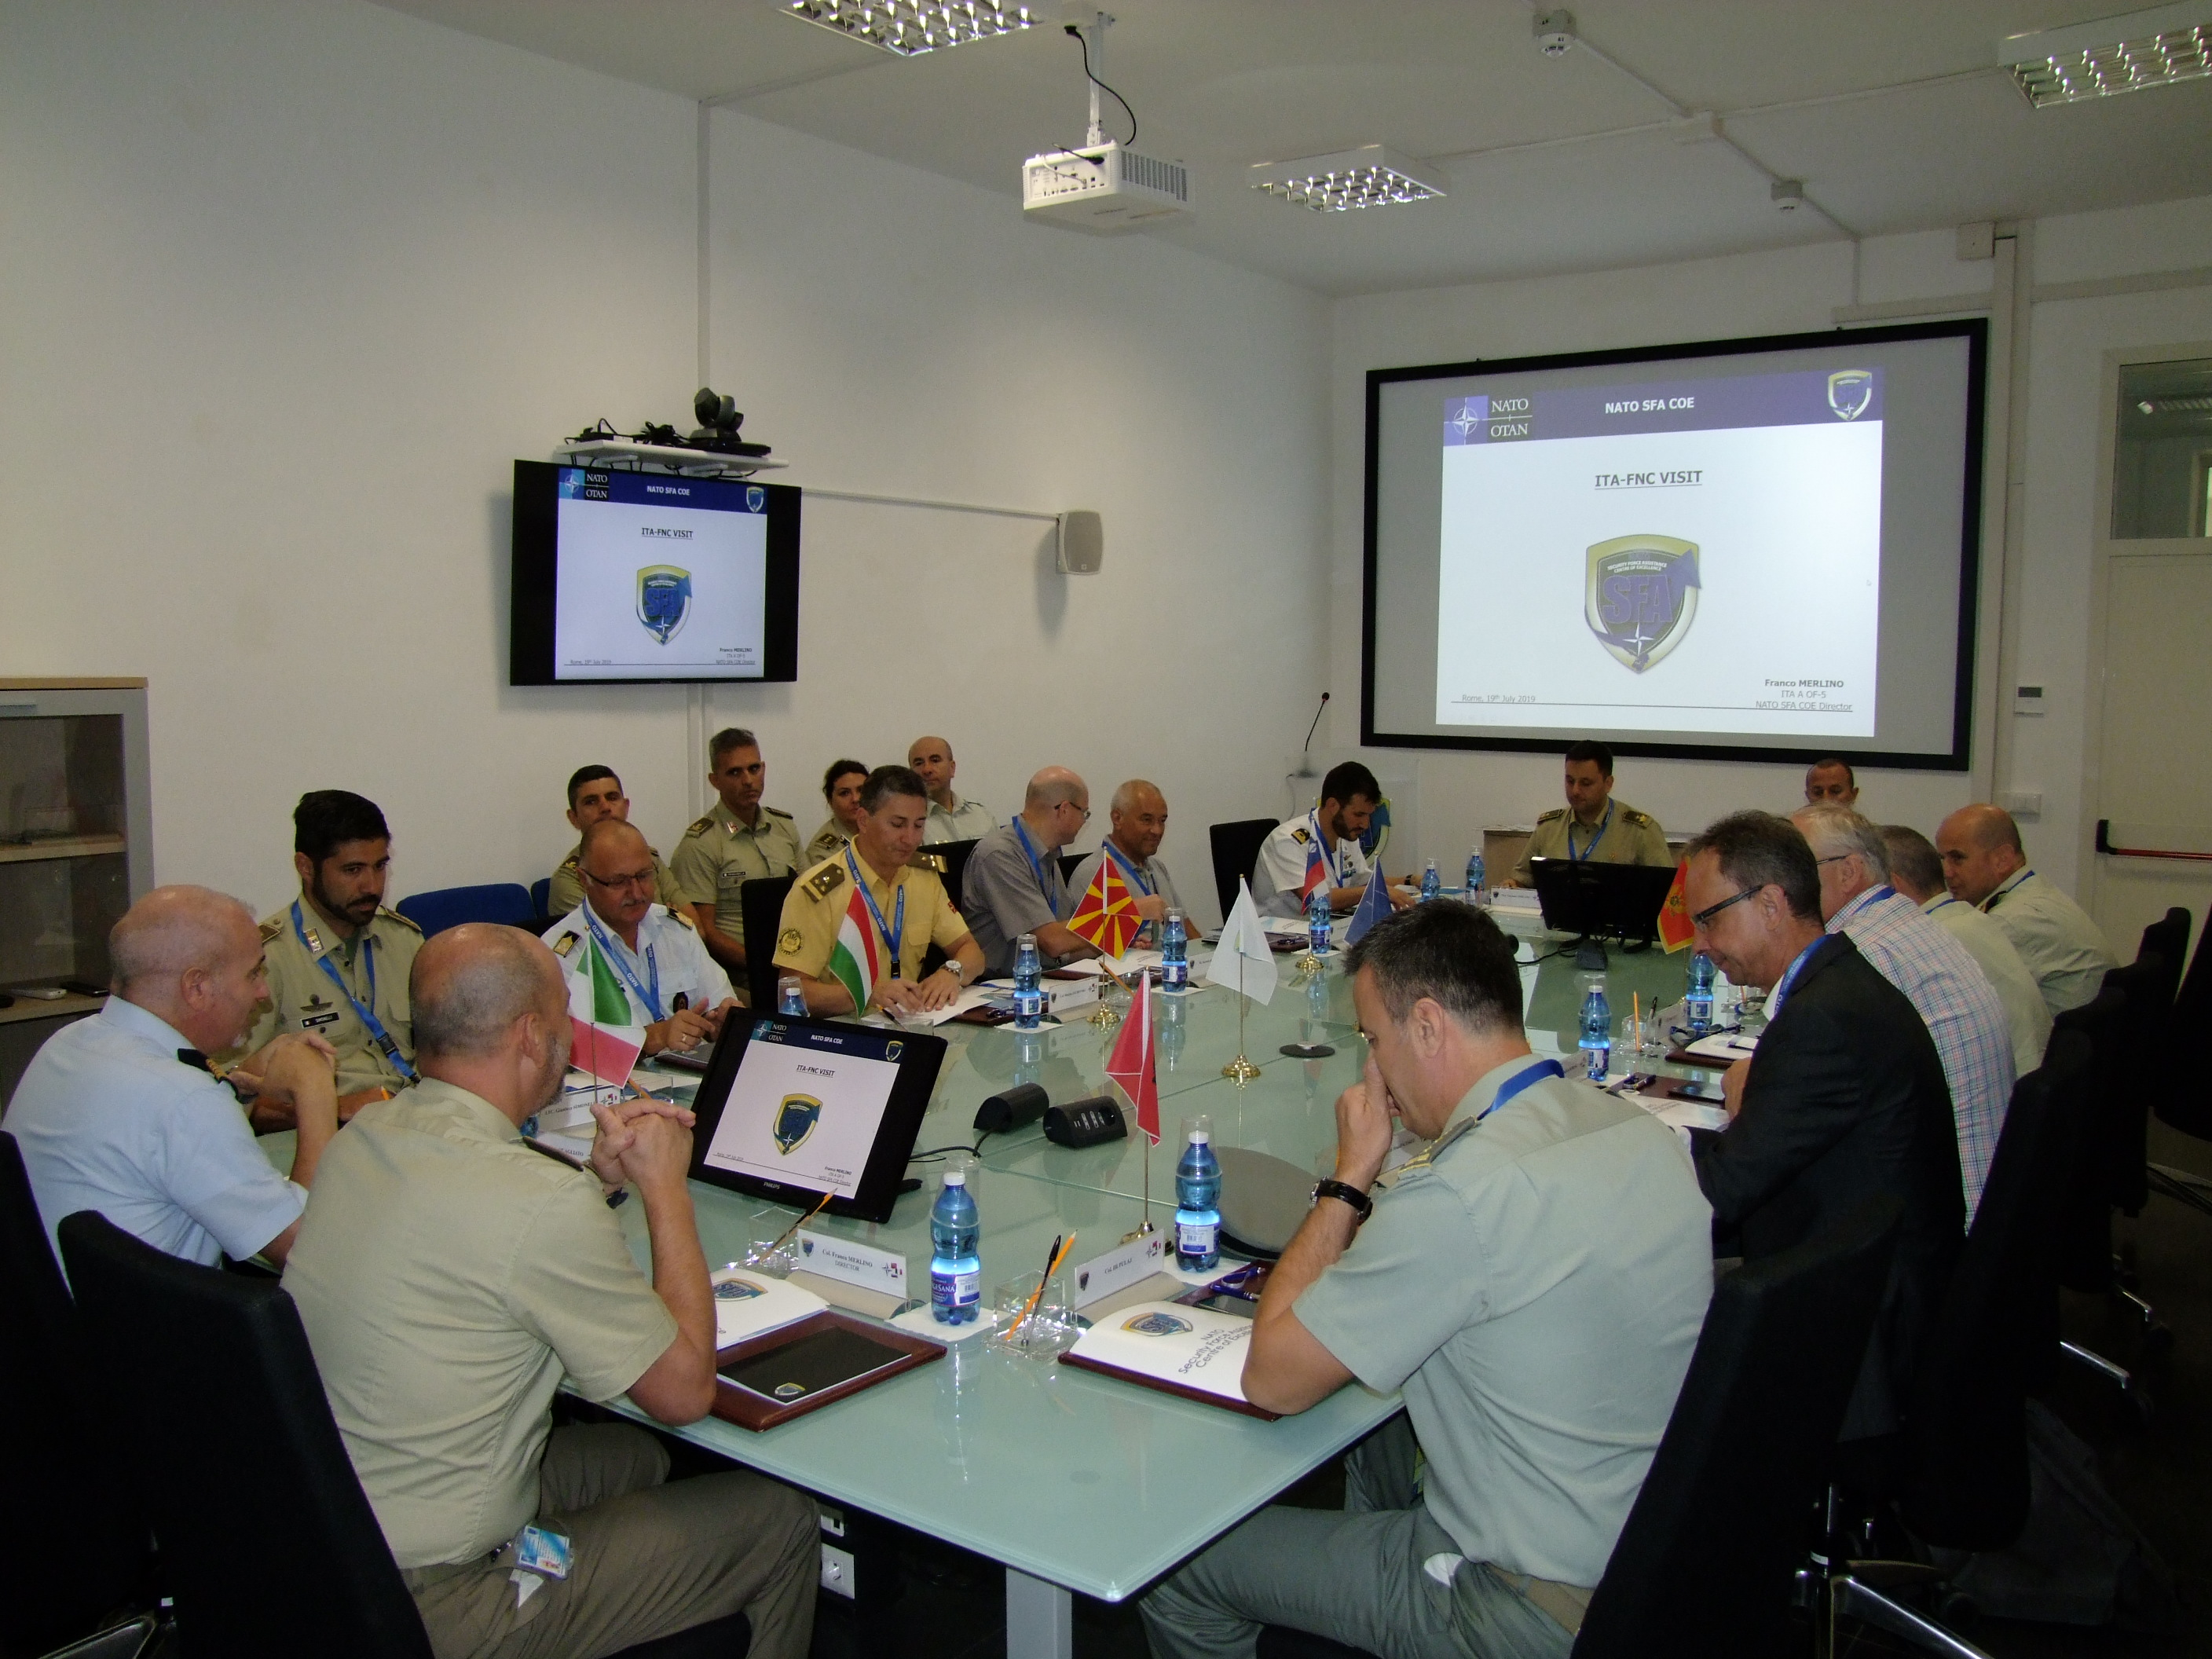 THE FRAMEWORK NATIONS CONCEPT ITALIAN-LED GROUP (FNC-ITA) VISITS THE NATO SFA COE